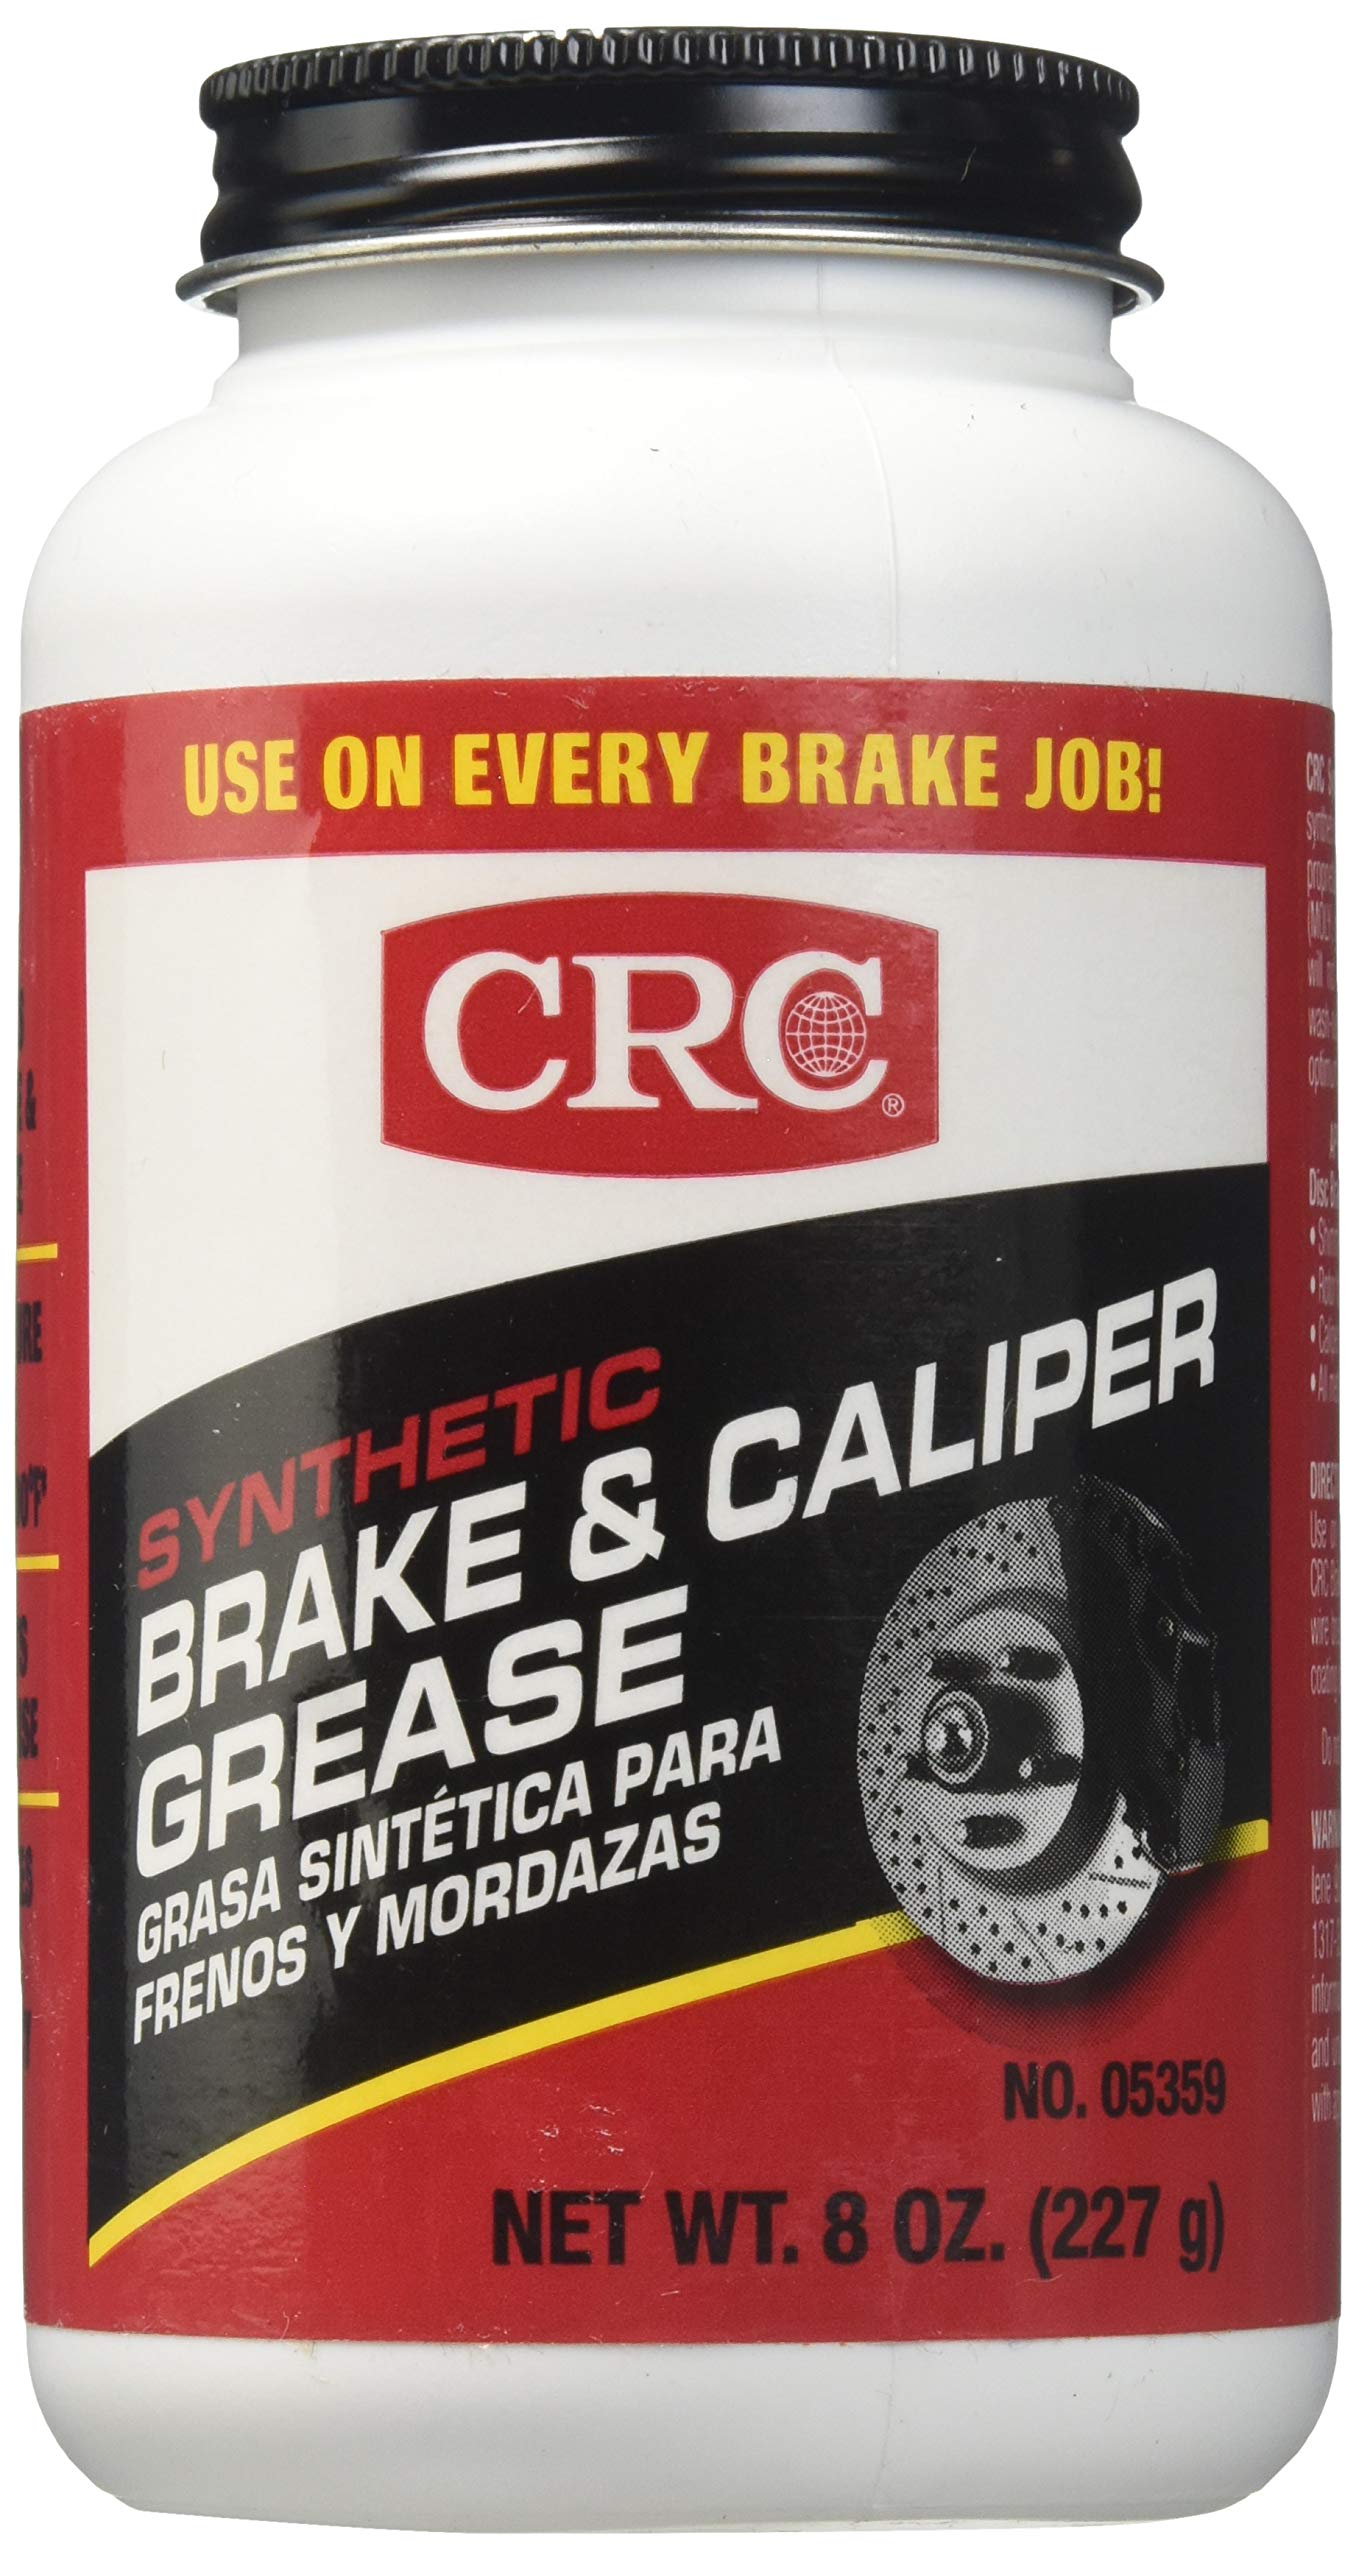 CRC 05359-6PK Brake & Caliper Synthetic Grease Tub, 8. Fluid_Ounces, 6 Pack by CRC